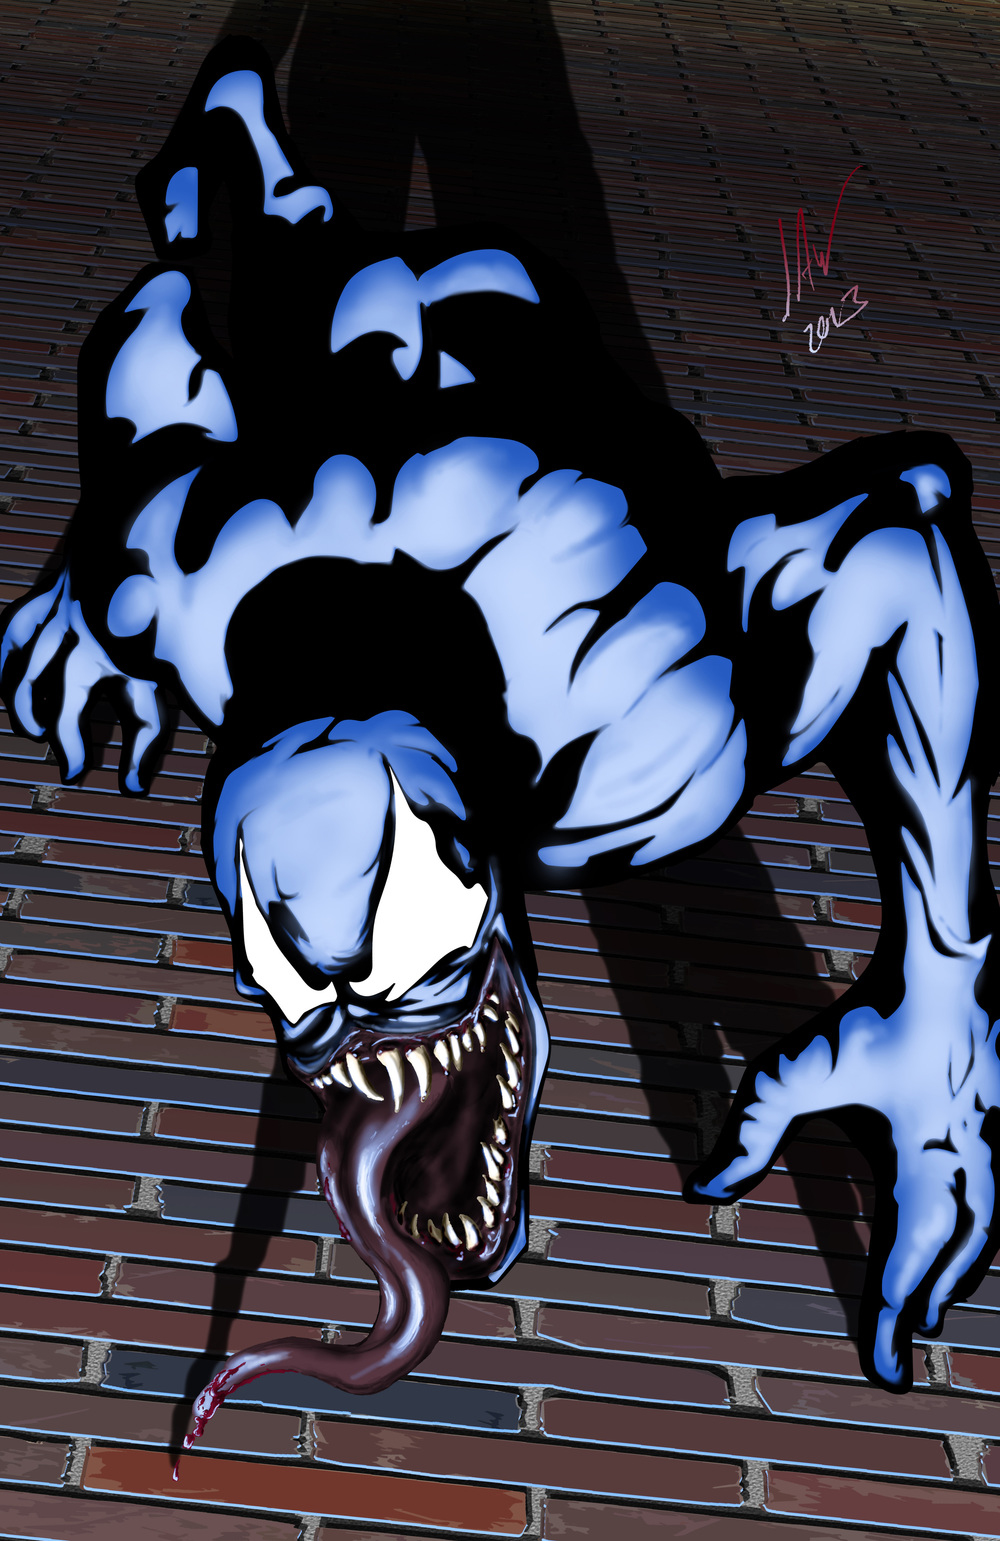 Venom-Creepy Neighborhood Symbiotic Man 11x17.jpg